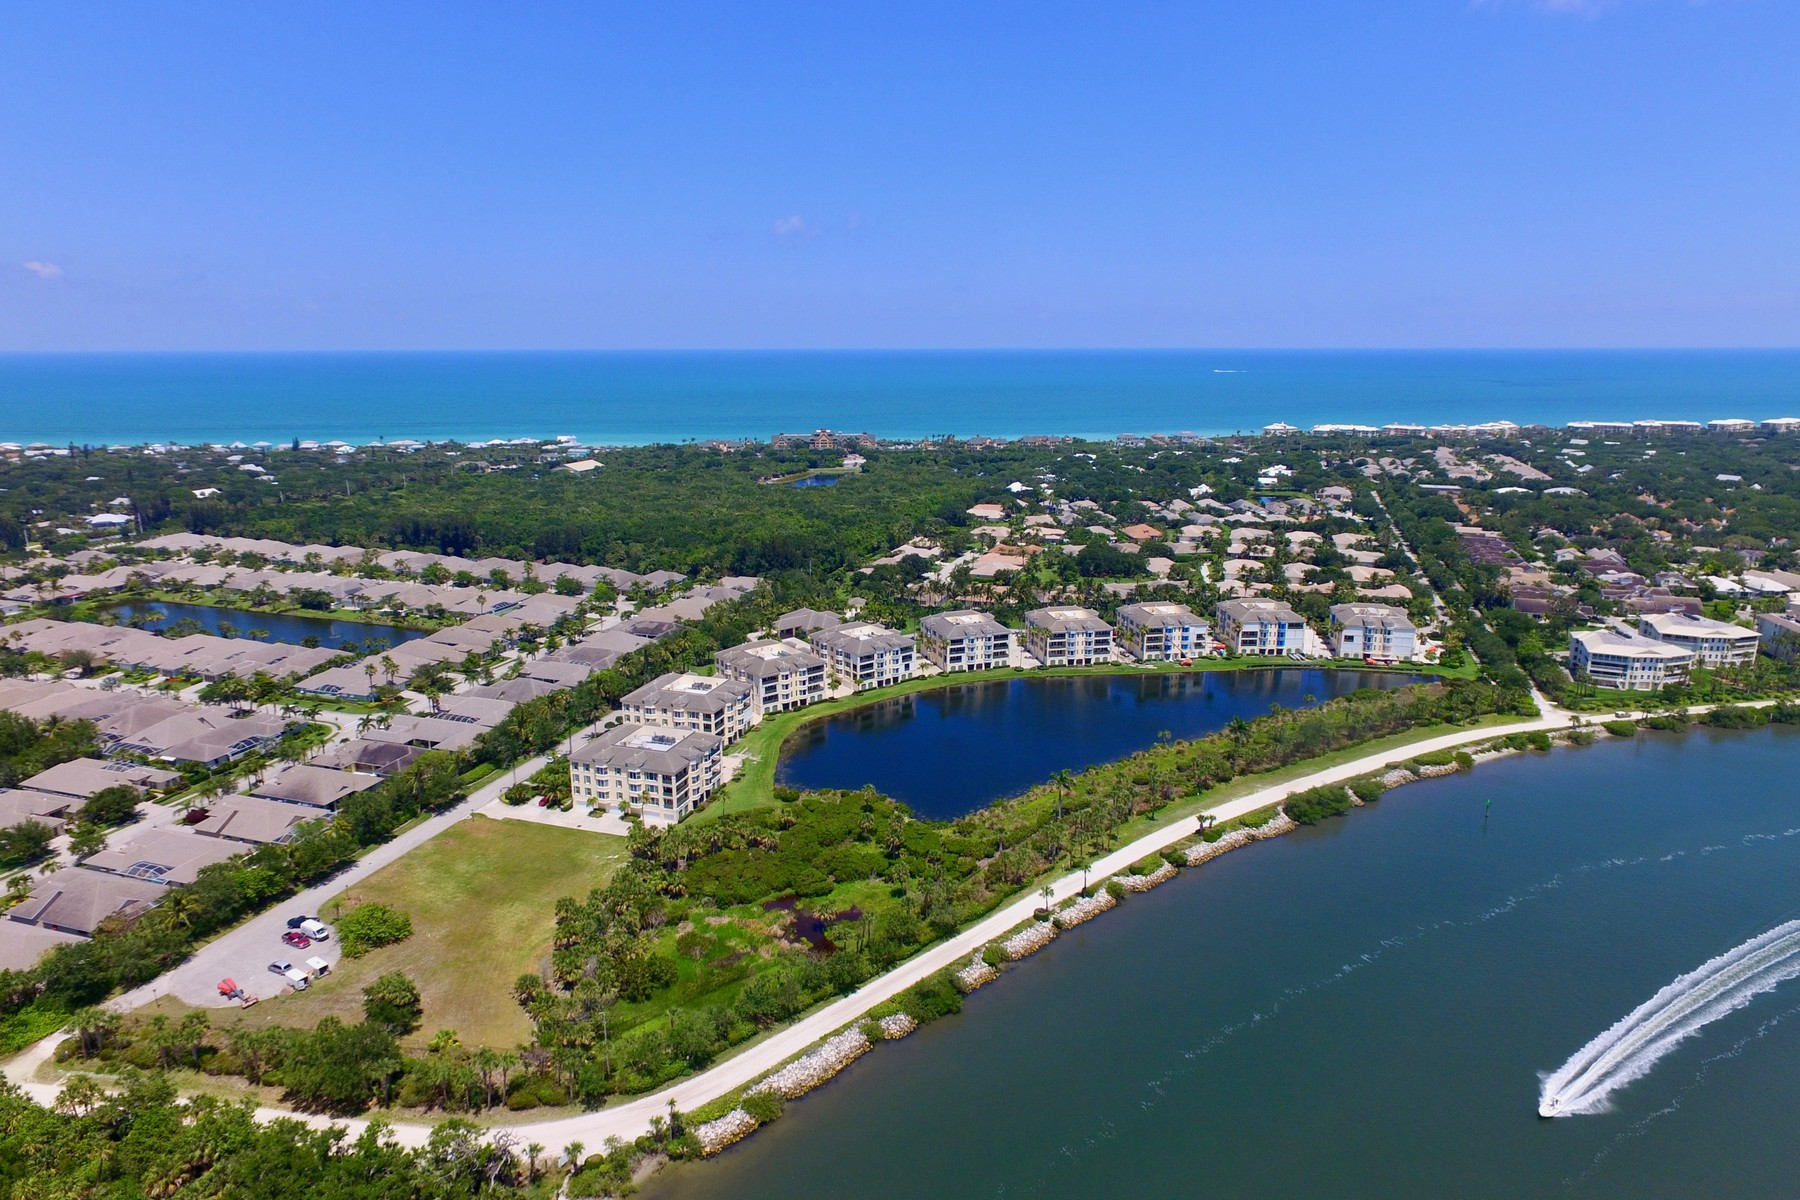 Property for Sale at Enjoy Endless Intracoastal Views from this Luxury Waterfront Condo! 9025 Somerset Bay Lane #301 Vero Beach, Florida 32963 United States